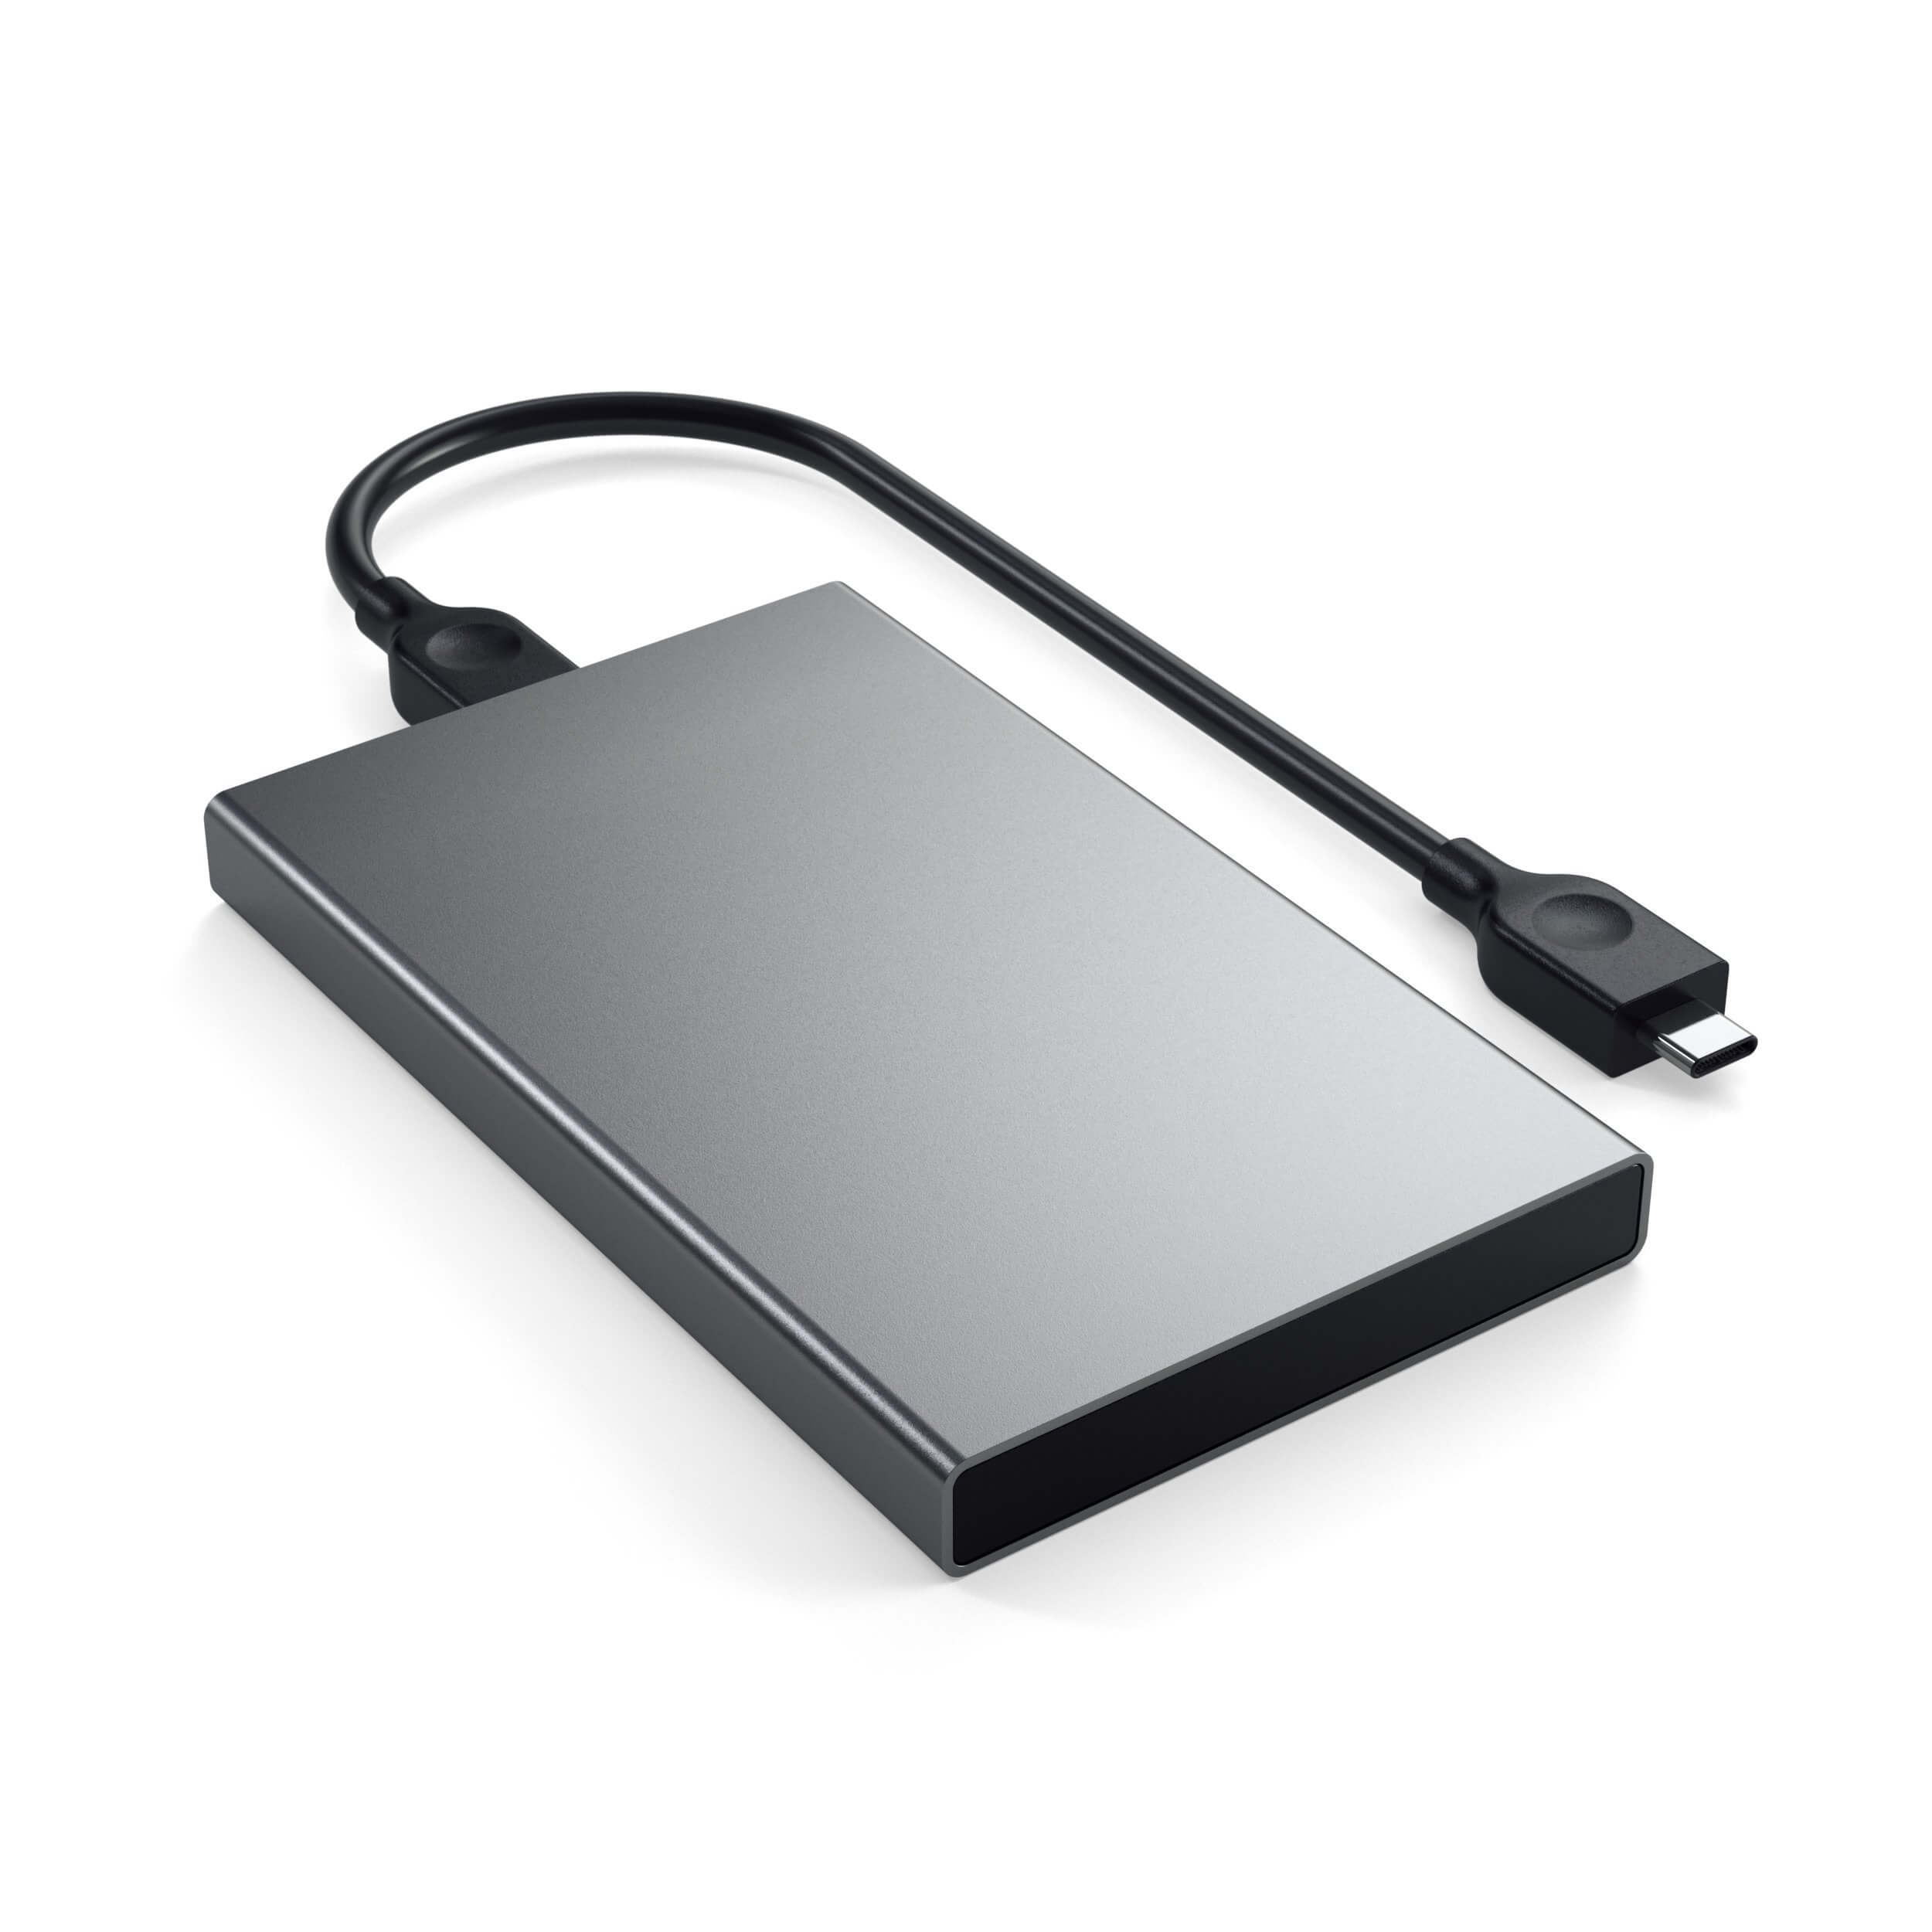 Satechi USB-C HDD/SSD Aluminum Enclosure - външна кутия с USB-C за 2.5 инчови HDD/SSD дискове (тъмносив)